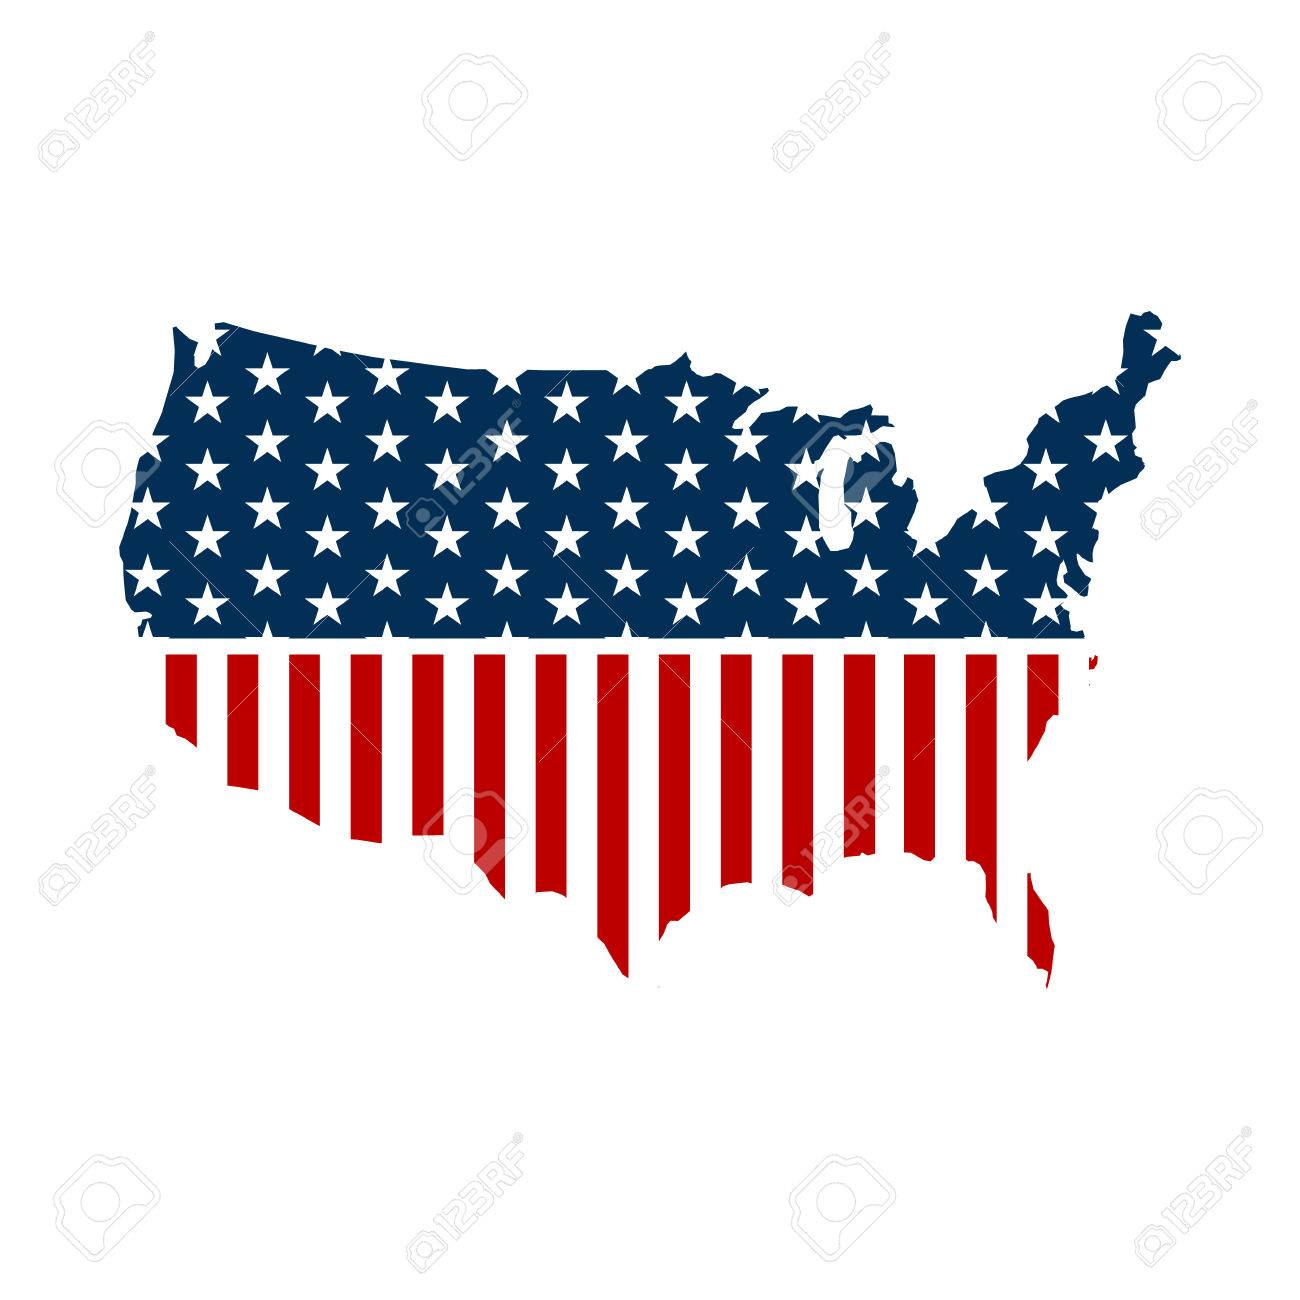 United States Patriotic Map Graphic Vector Design Illustration